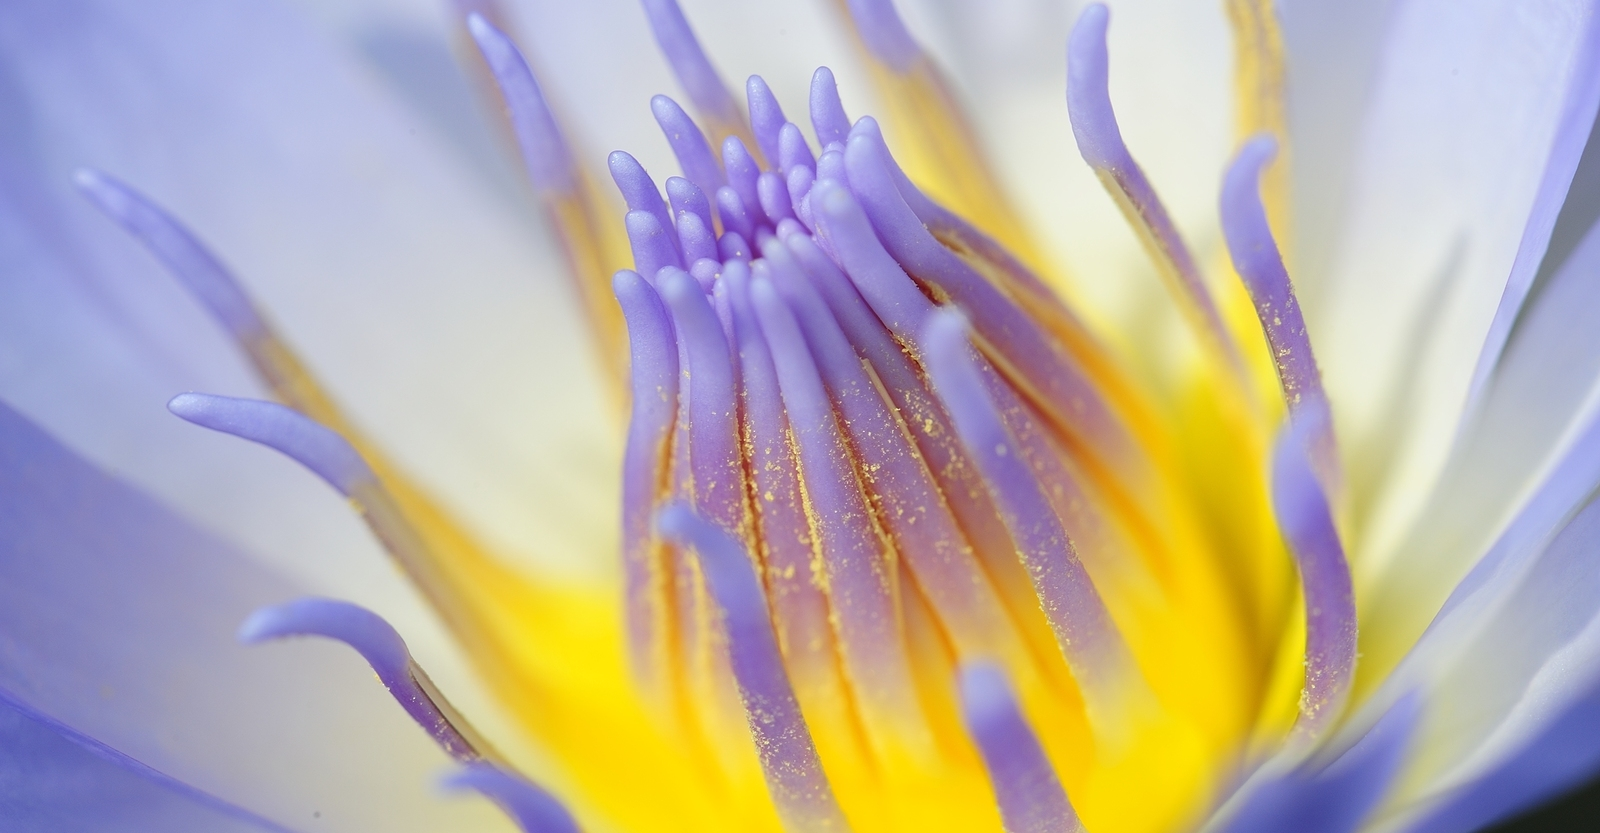 Use This Common Household Item To Significantly Improve Your Macro Images